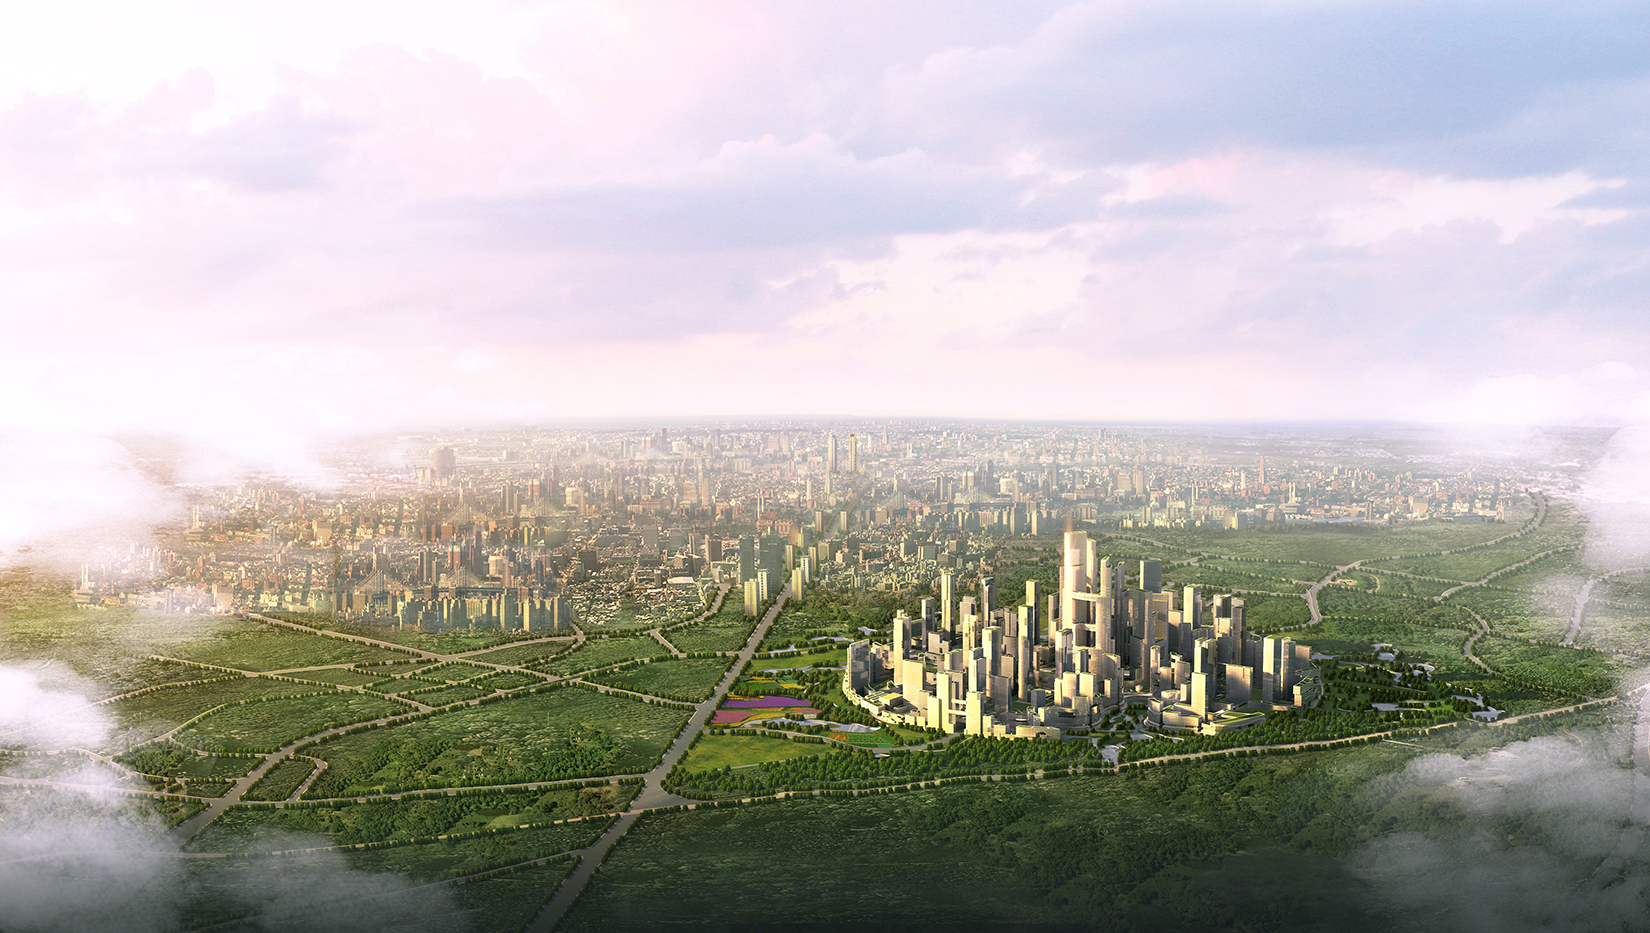 Tianfu Ecological City aerial